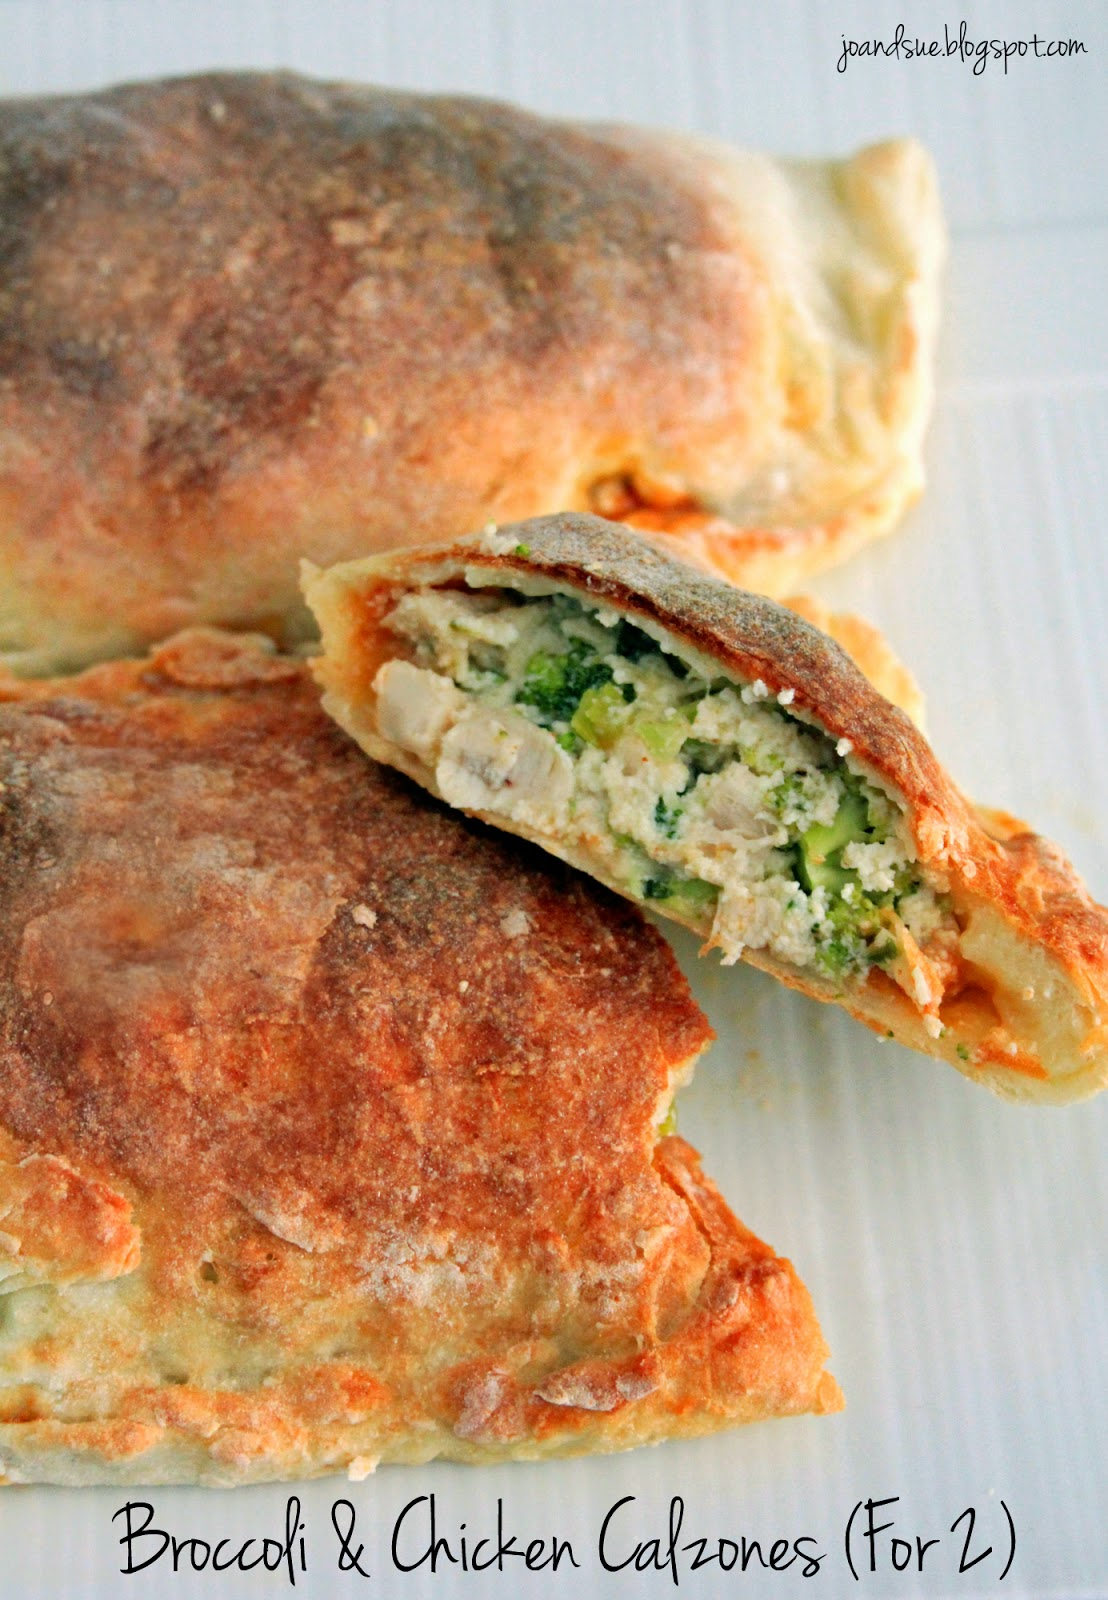 Jo and Sue: Broccoli & Chicken Calzones (For 2)